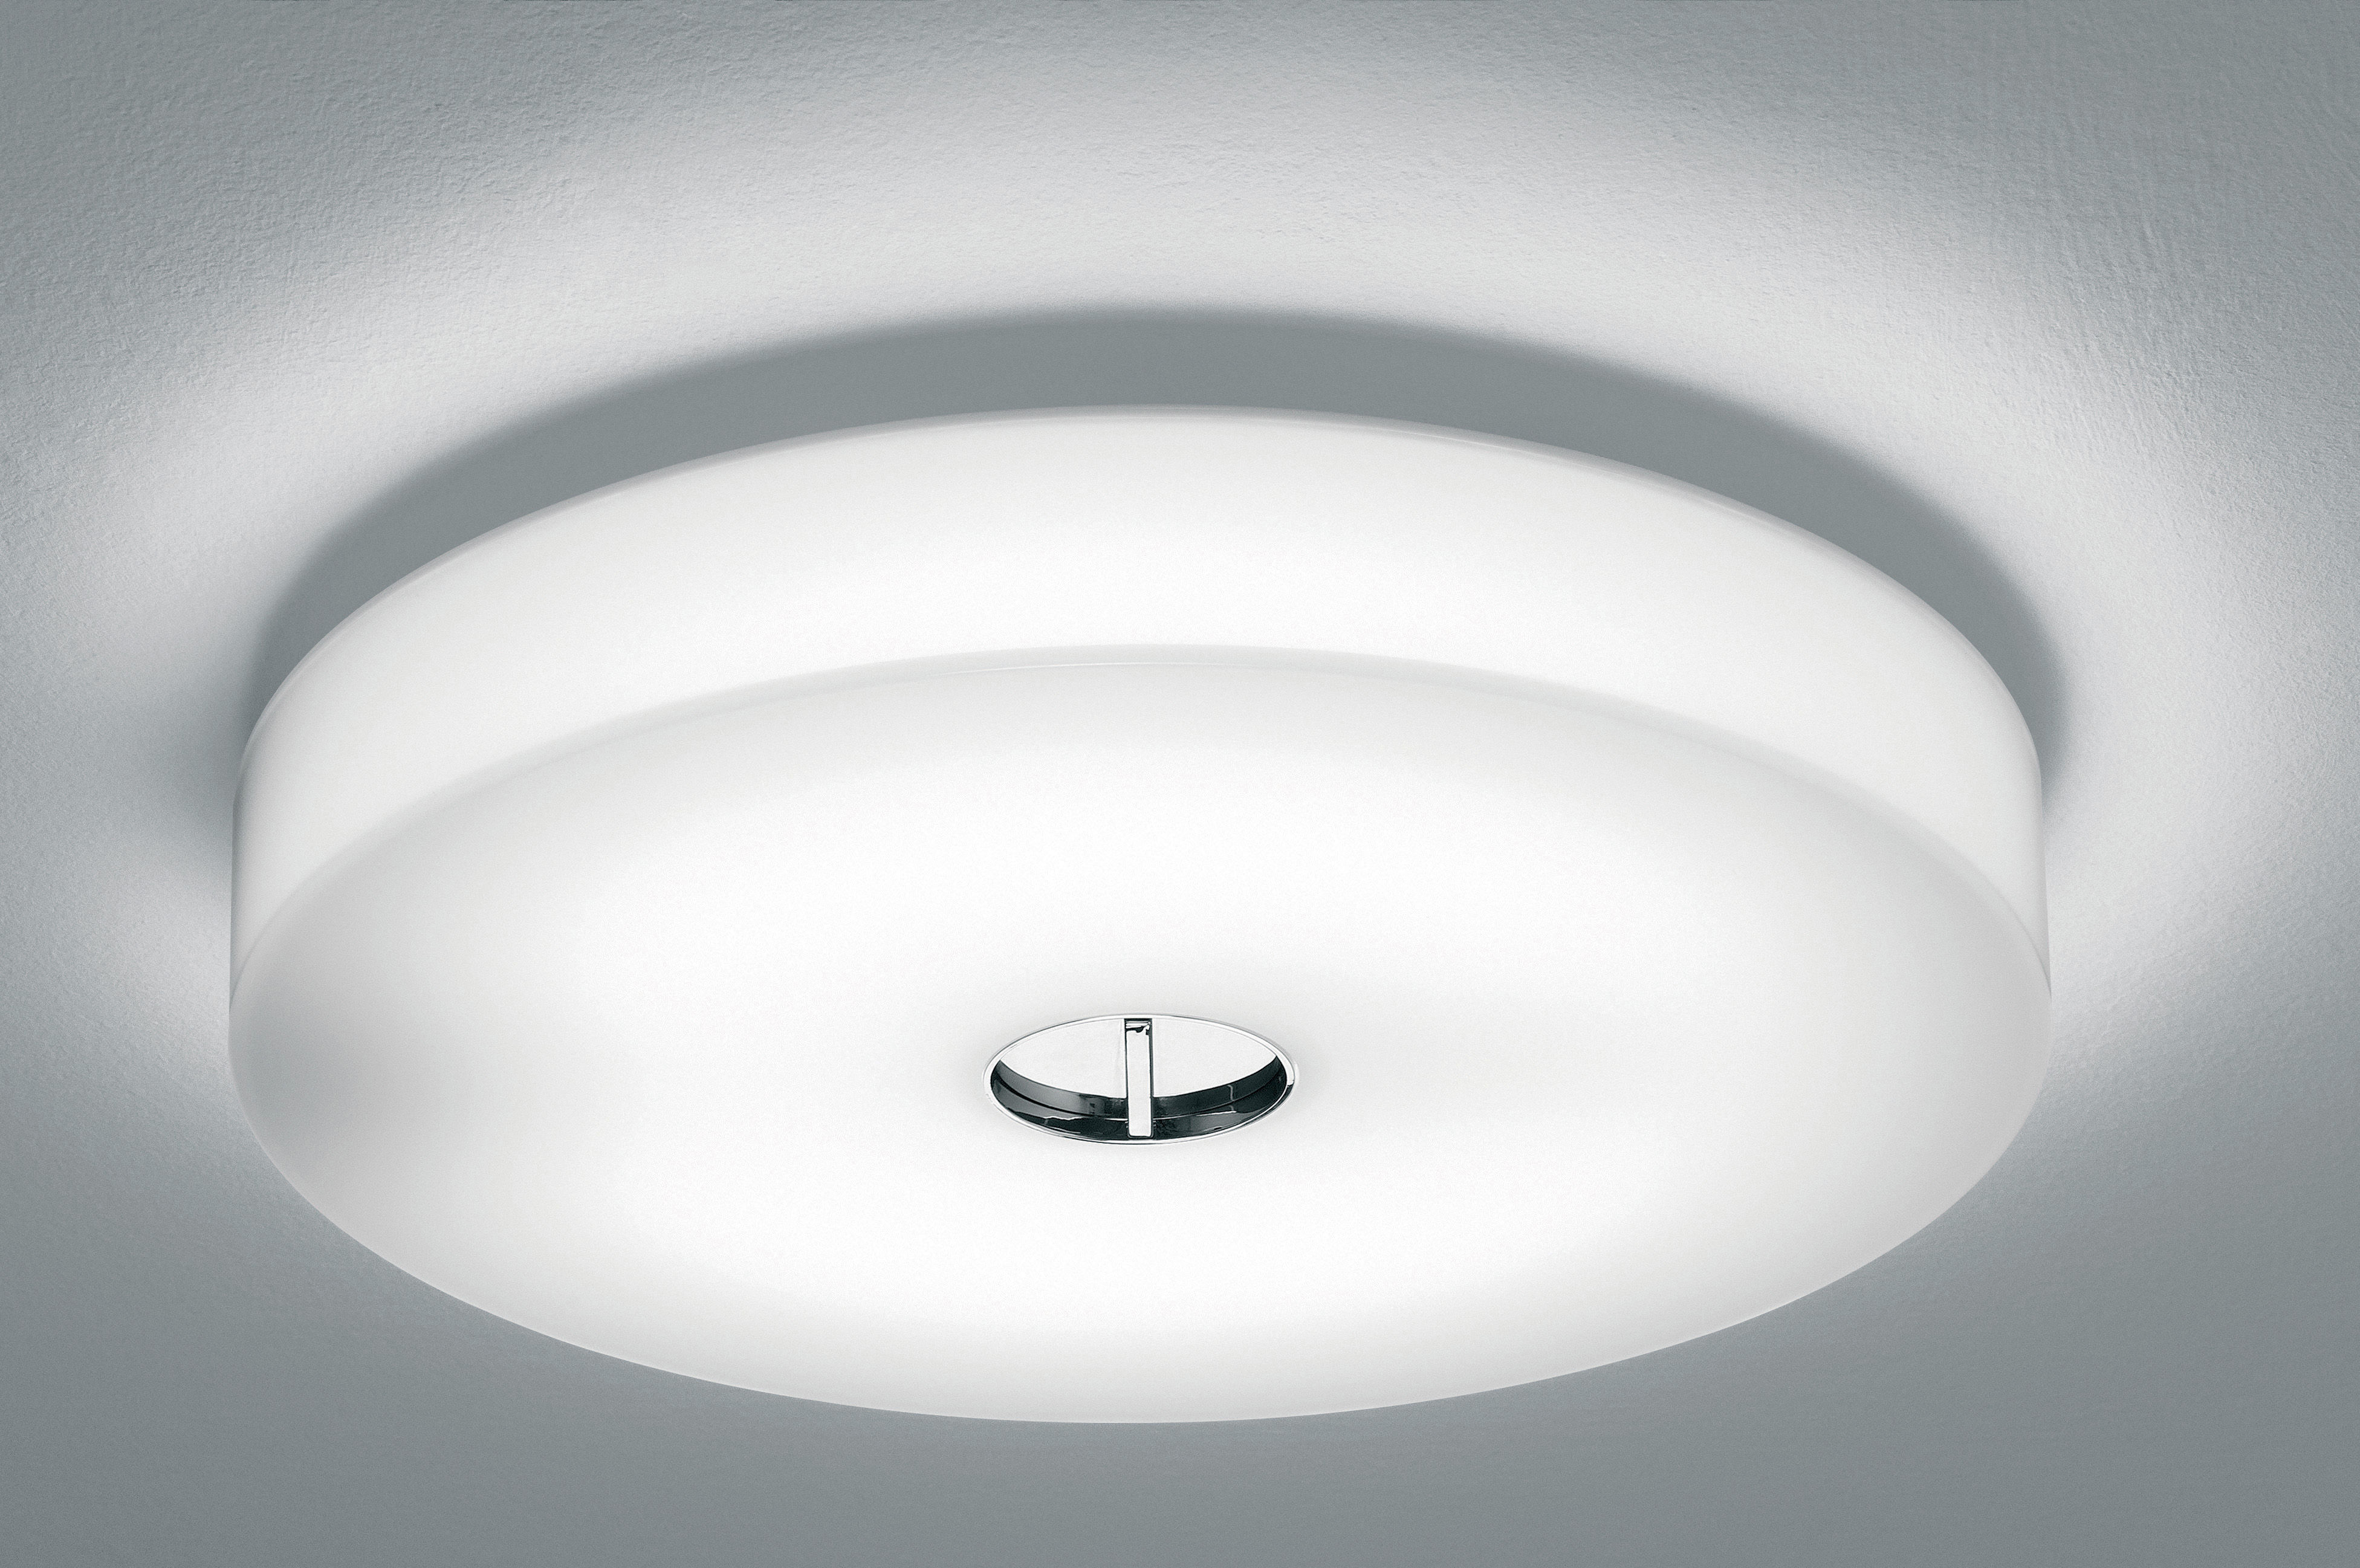 Plafoniere Led Flos : Plafoniere led flos come collegare un dimmer in tensione